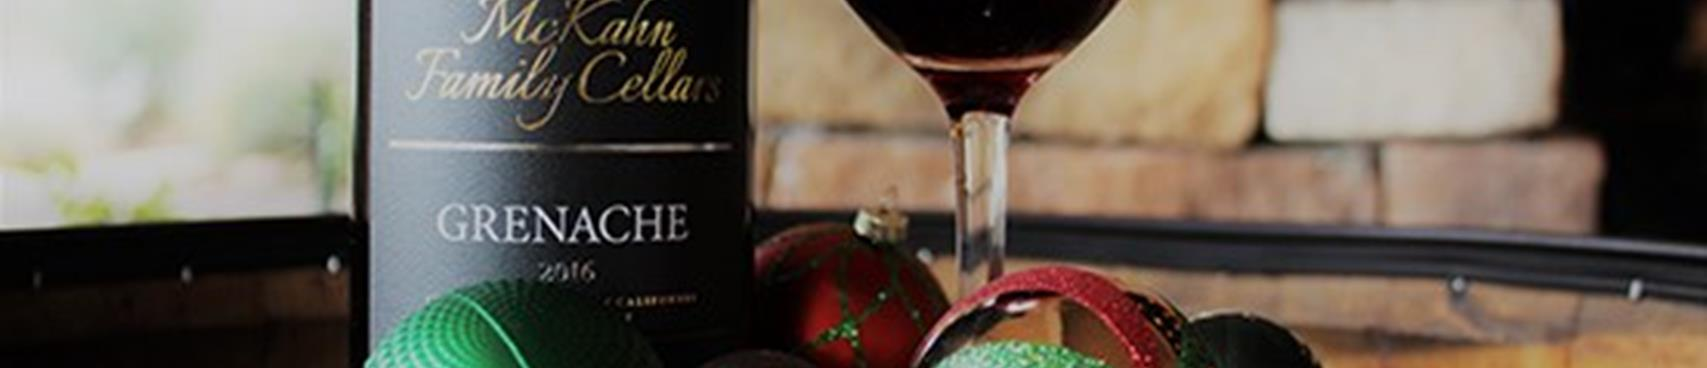 Purchase Tickets to SIPS & SWEATERS CLUB EVENT at McKahn Family Cellars on CellarPass